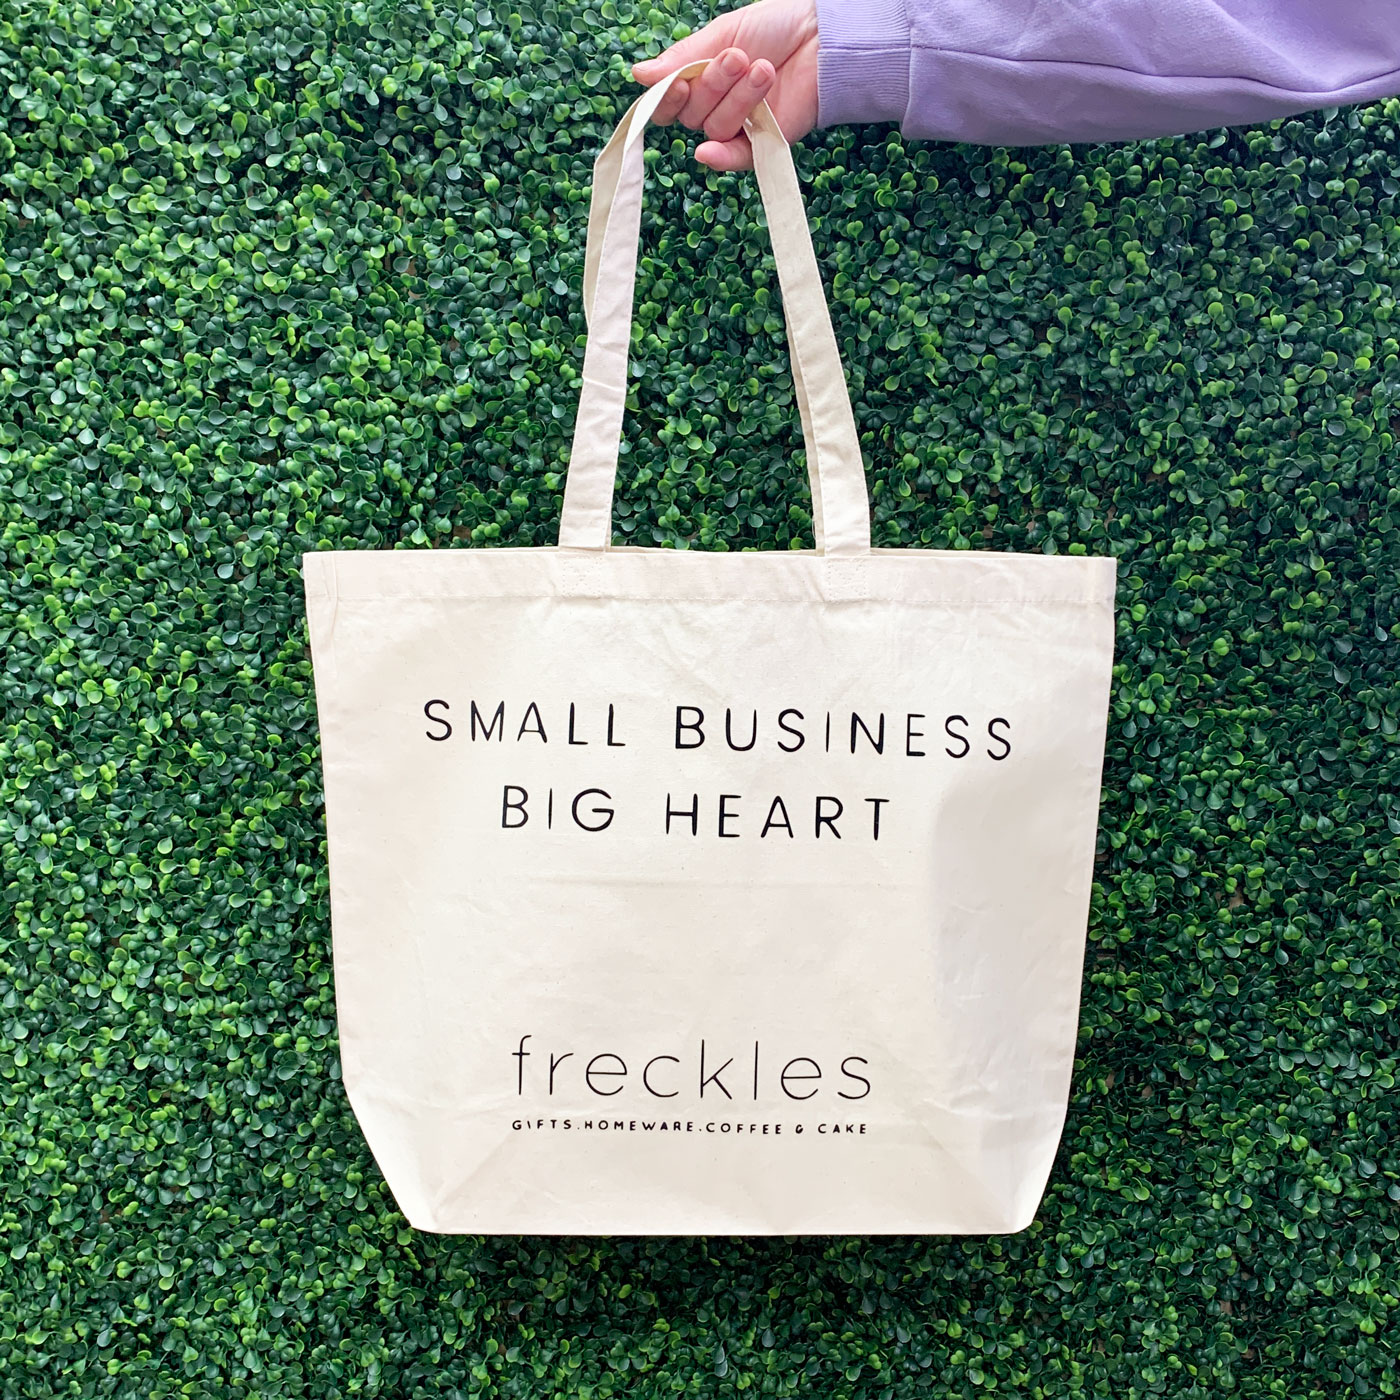 Small Business Big Heart Tote Bag